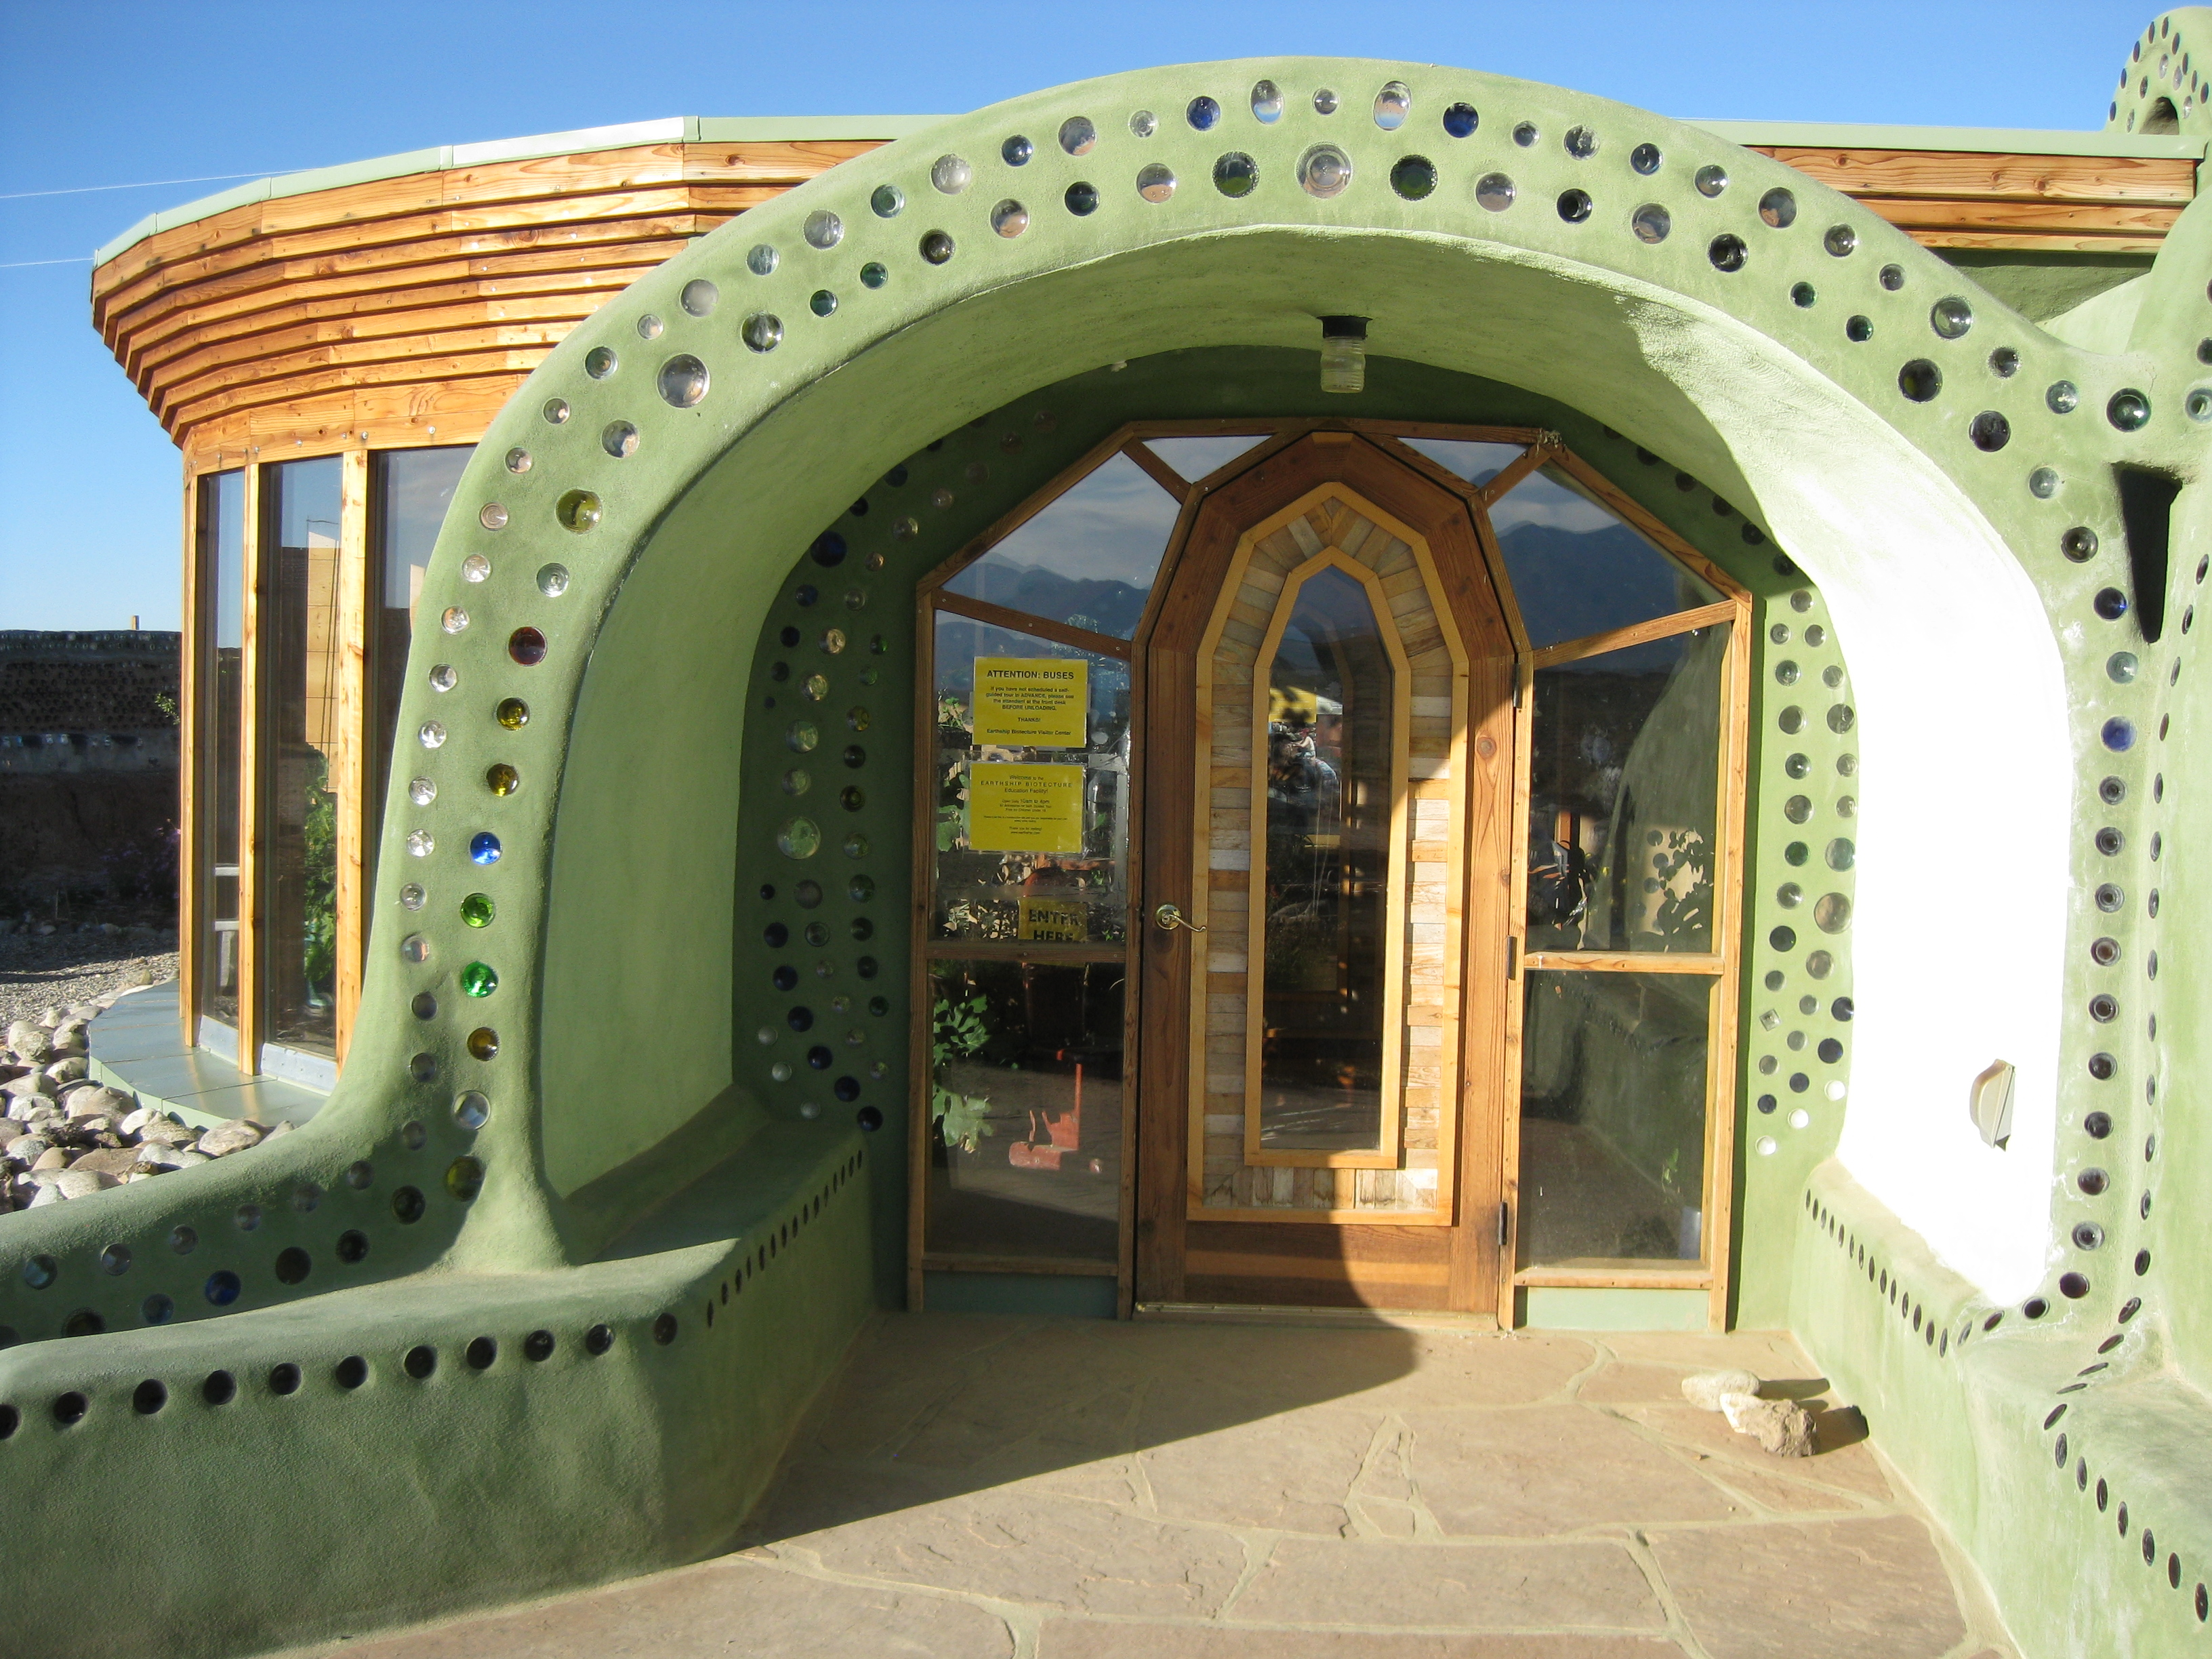 Sutainable Living: Earthships - Your No.1 source of Architecture and on free trees designs, free architecture designs, free timber frame designs, free green designs, free straw bale house designs, free permaculture designs, free energy designs, free building designs,